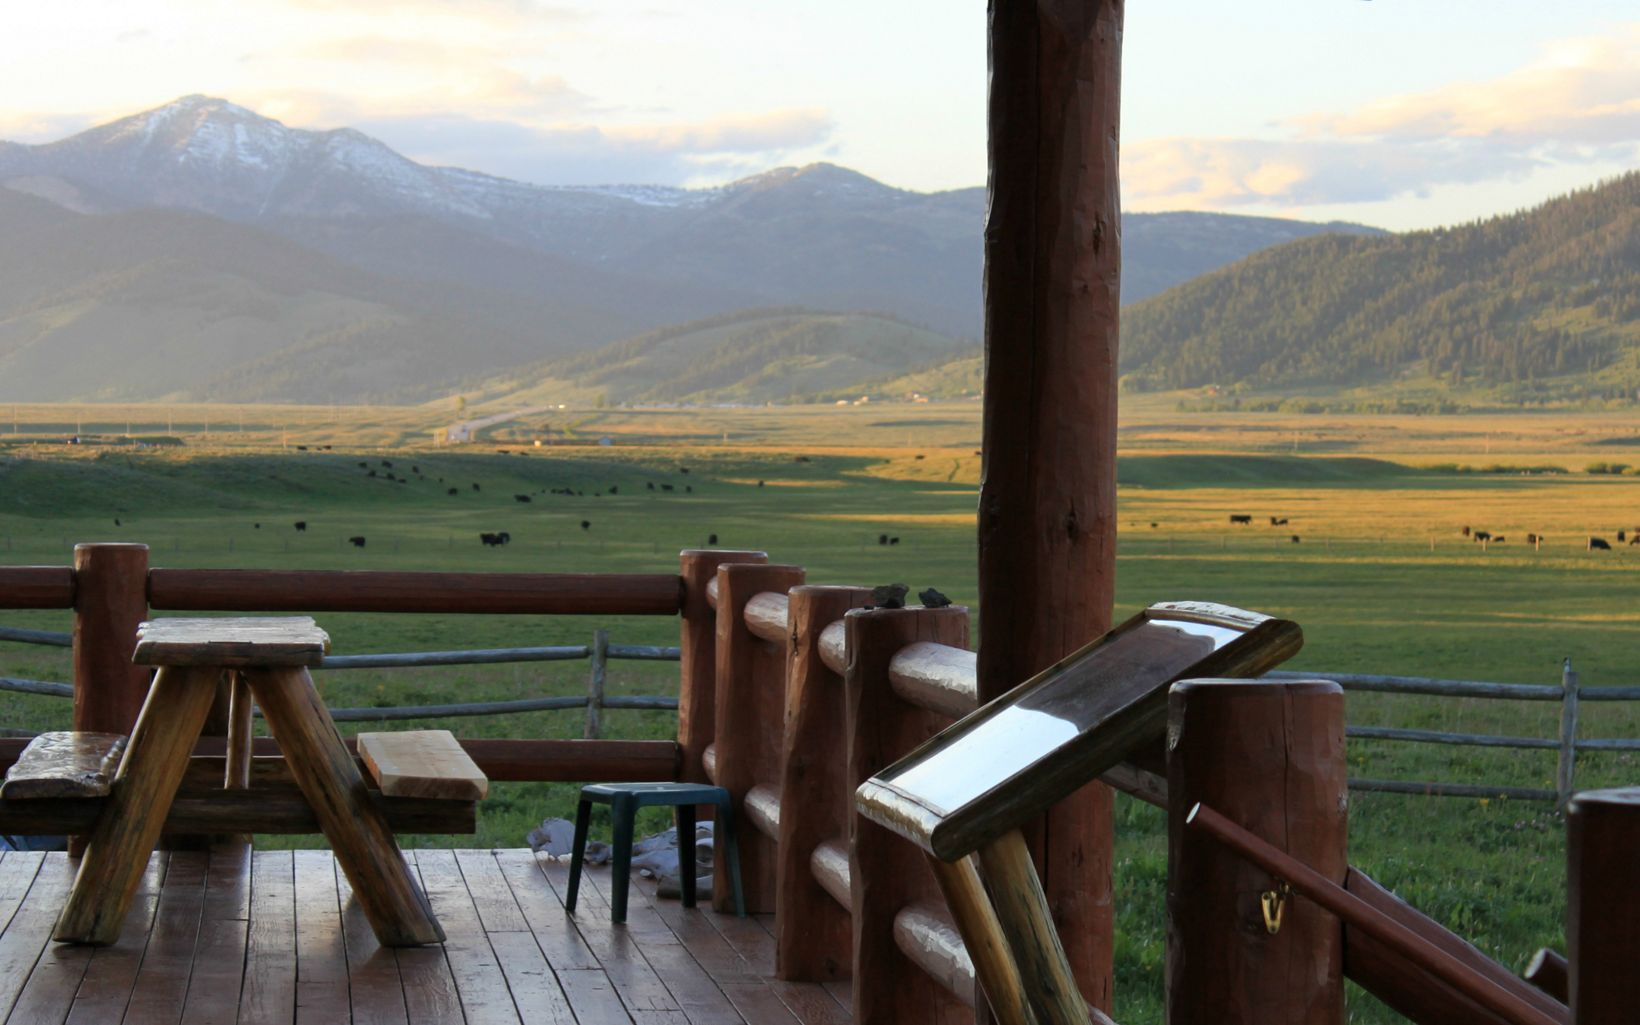 The porch at the Flat Ranch Preserve visitors center is a great spot to enjoy the sunset